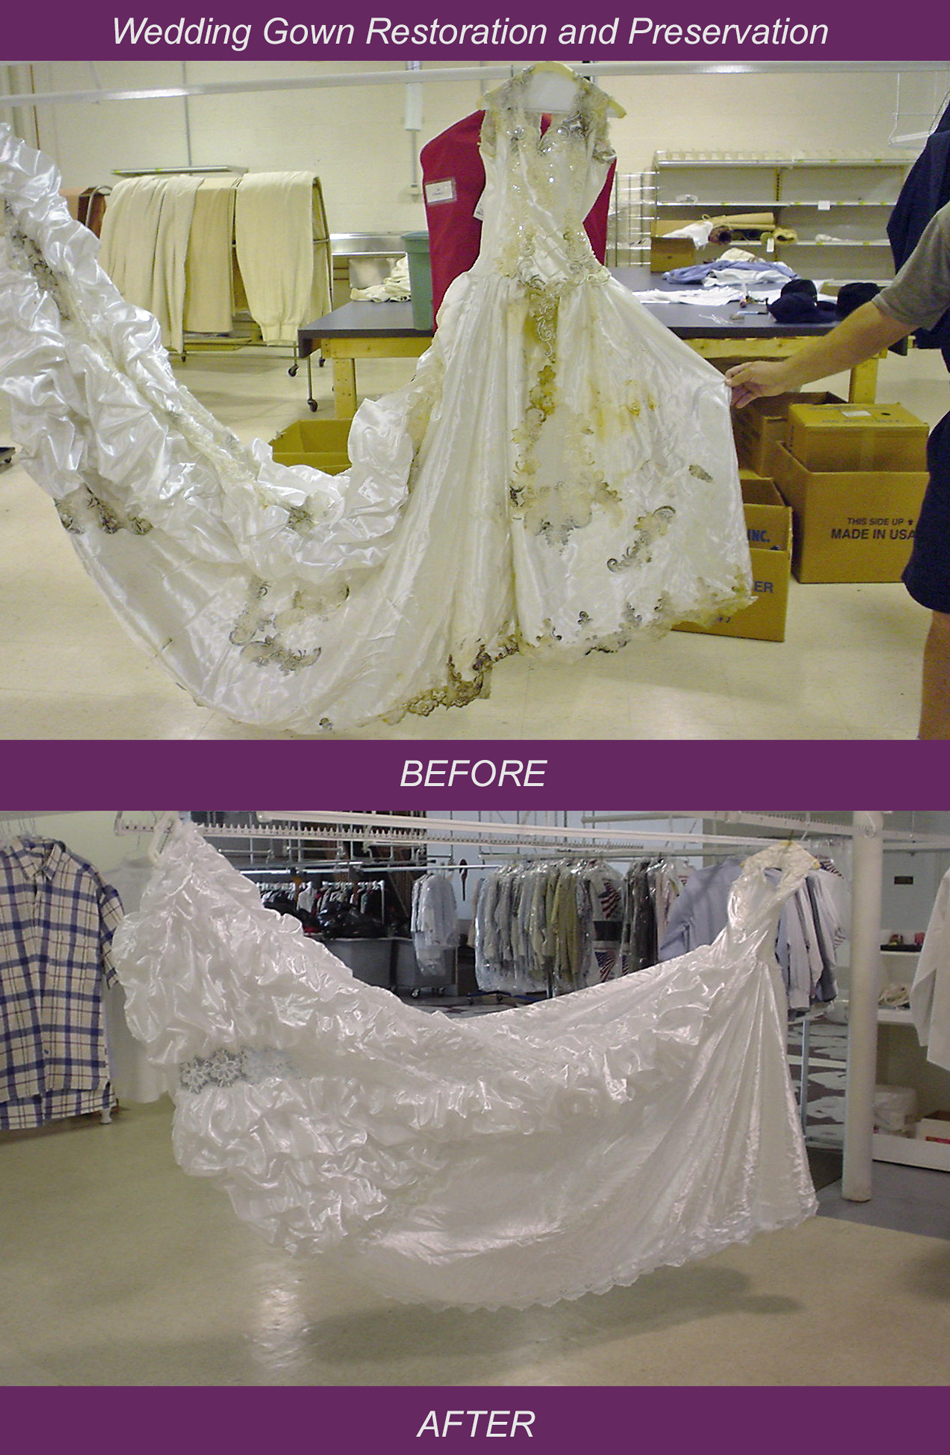 Wedding Gown Preservation and Restoration